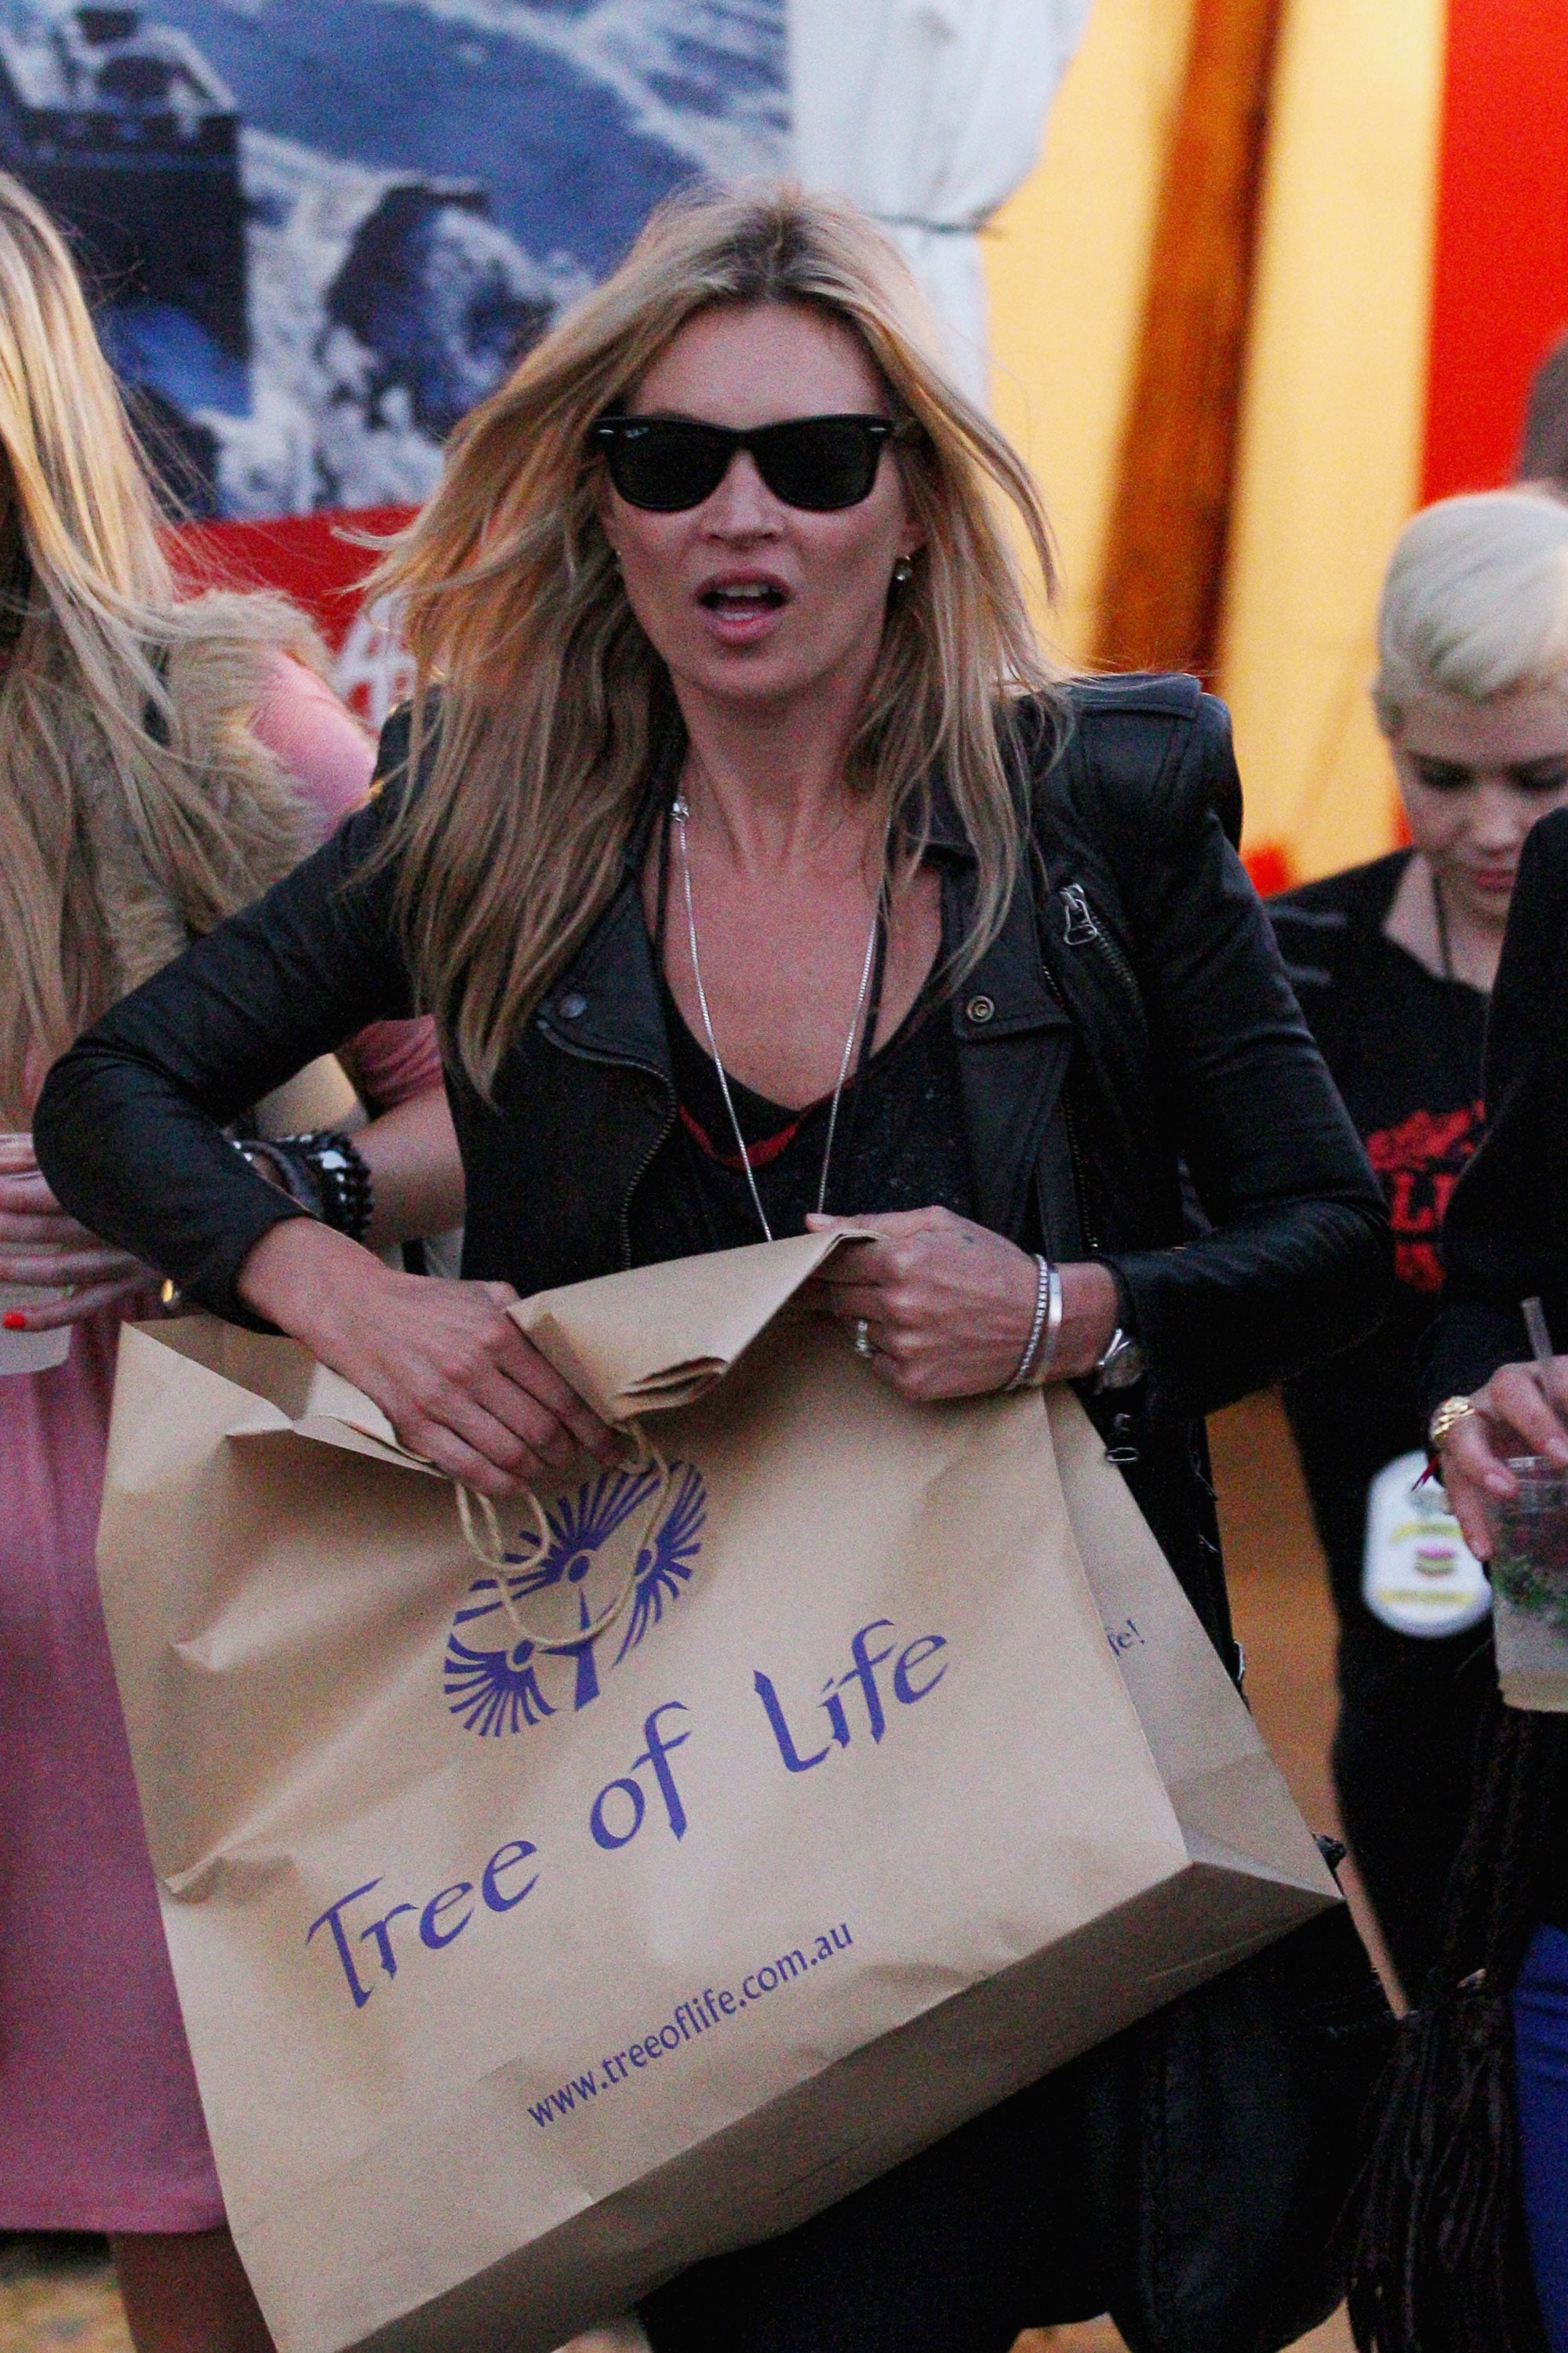 Kate Moss hangs out at an Australian festival.